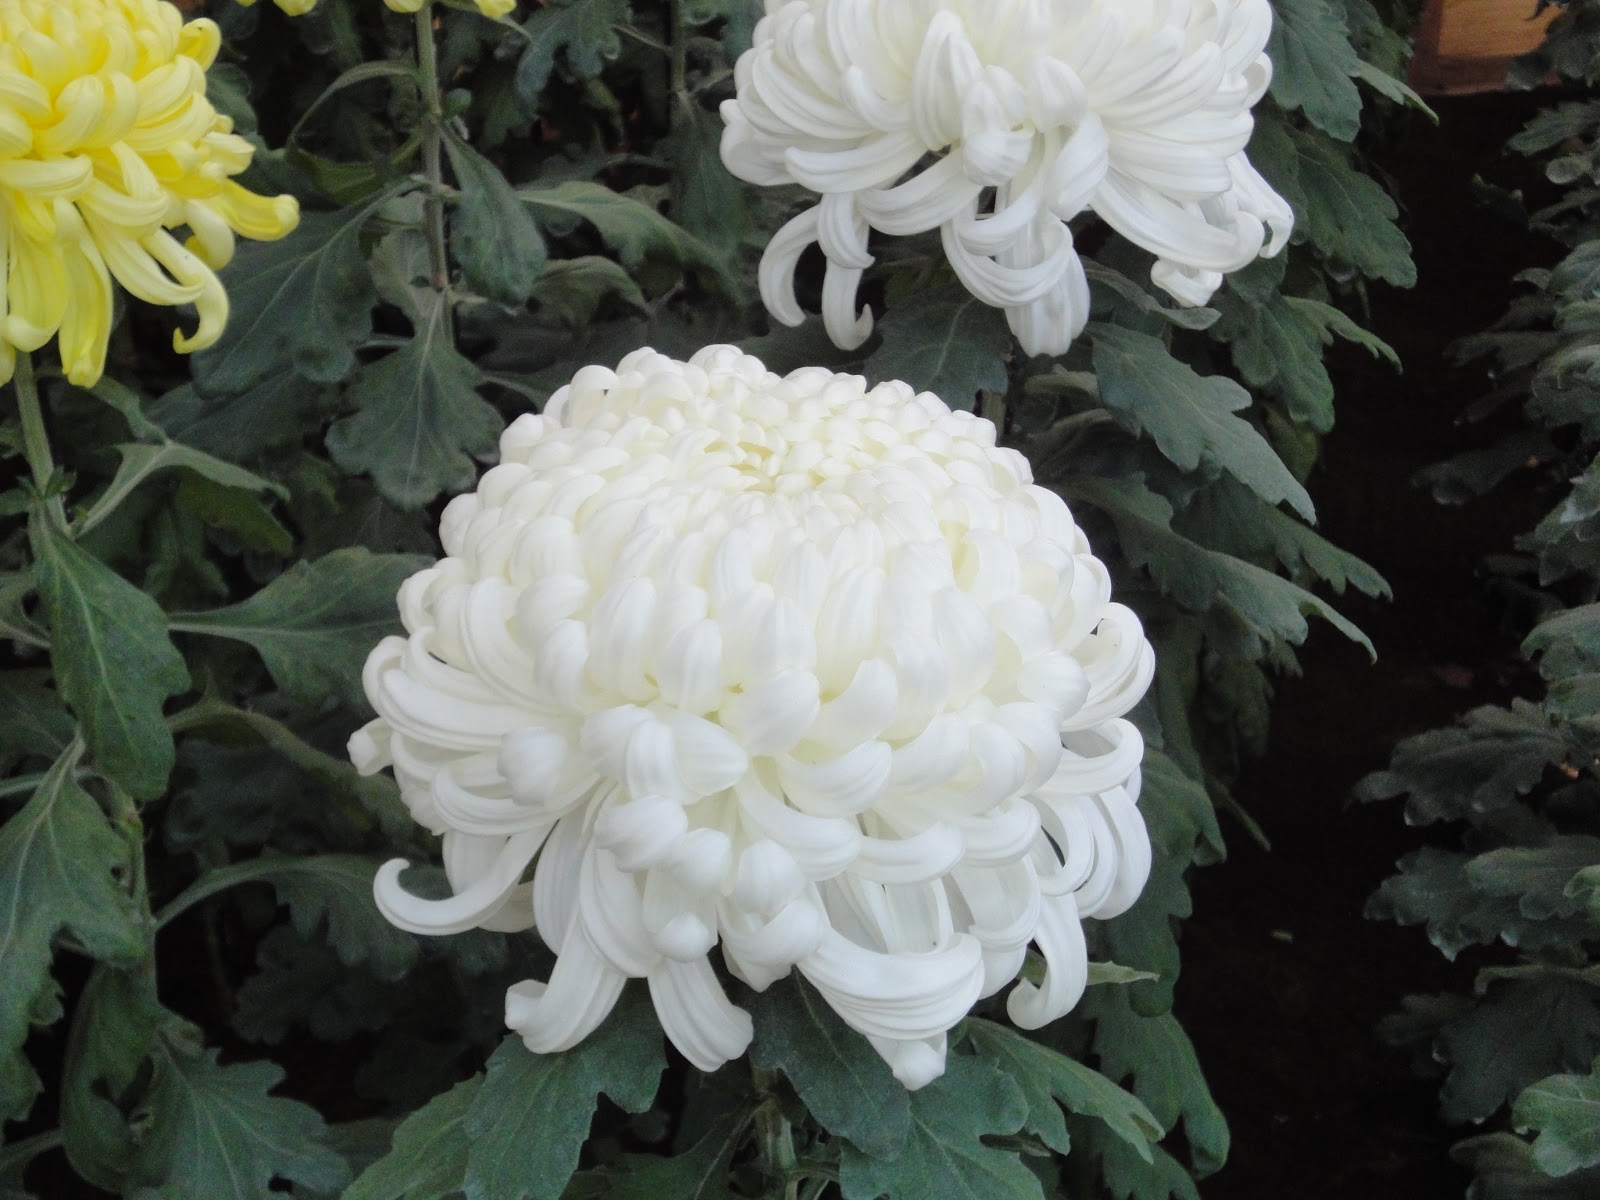 analysis on the chrysanthemums The chrysanthemums study guide contains a biography of john steinbeck, literature essays, quiz questions, major themes, characters, and a full summary and analysis about the chrysanthemums the chrysanthemums summary.